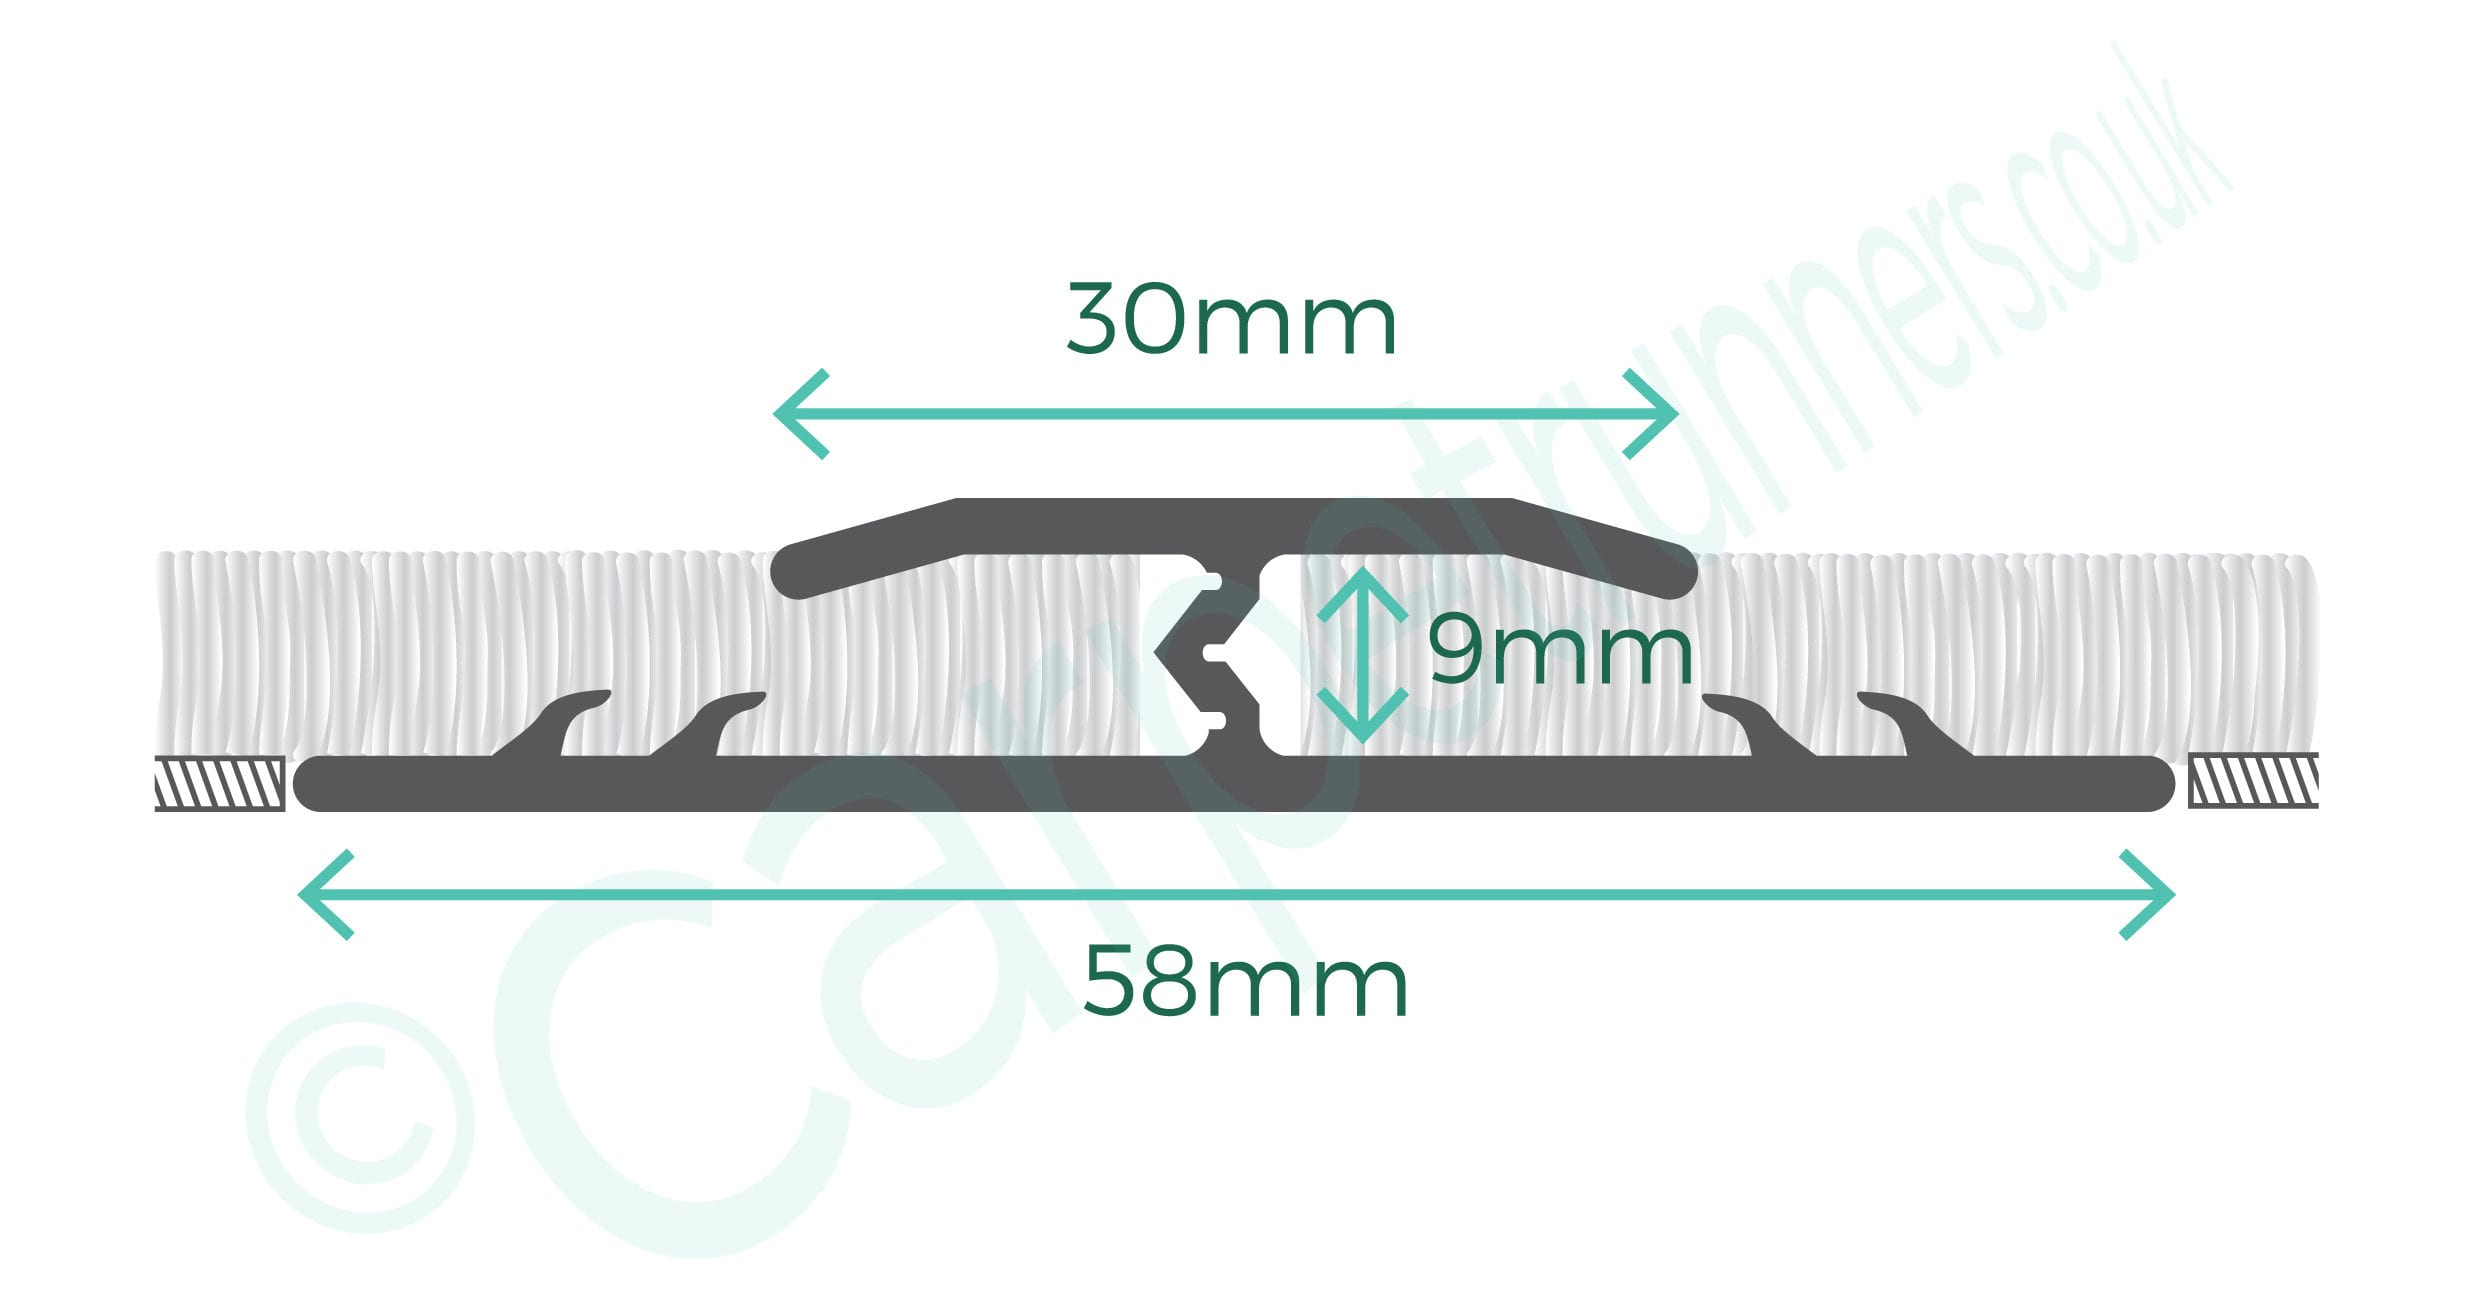 Premier Double Z9 door threshold joins carpets - product diagram